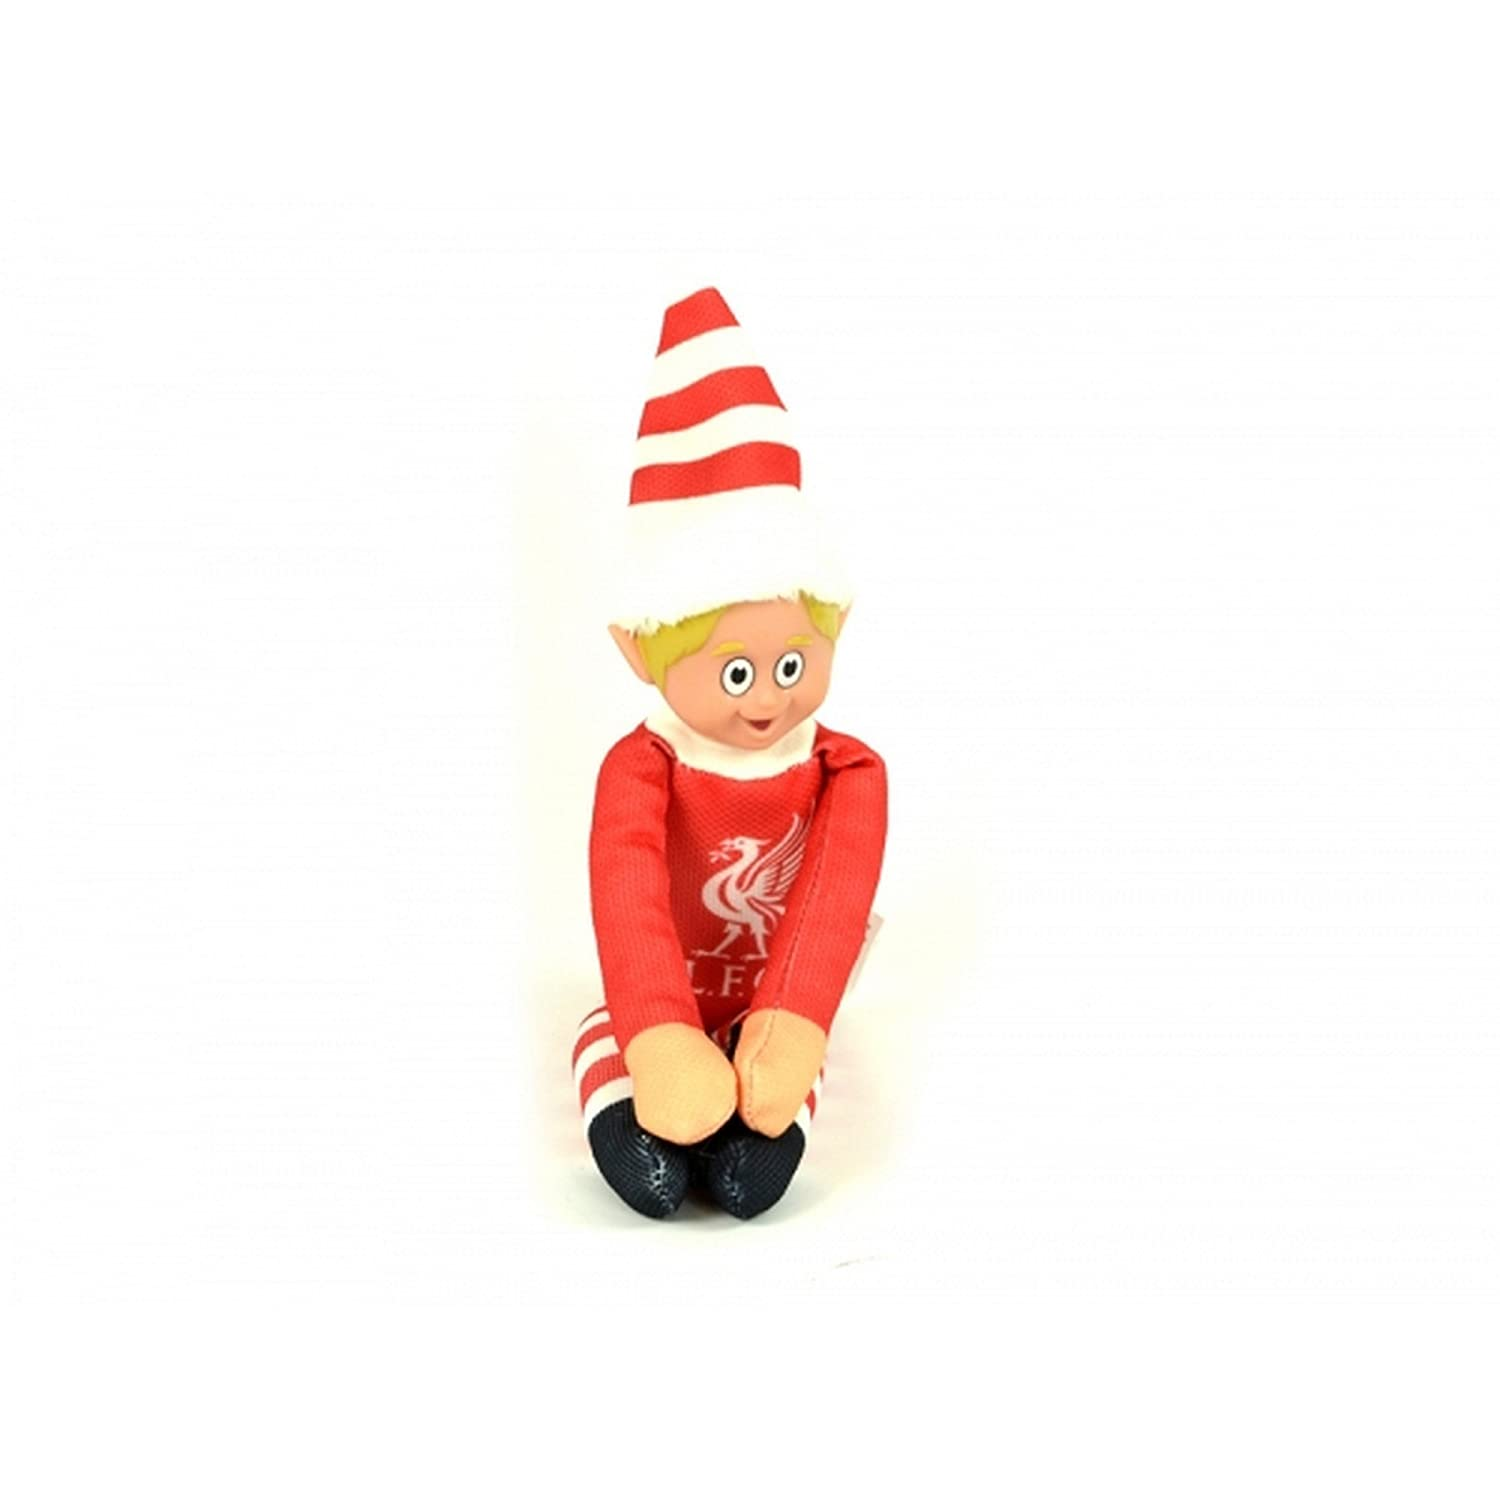 6c243d9552a Liverpool FC Official Football Christmas Team Elf (One Size) (Red White)   Amazon.co.uk  Clothing